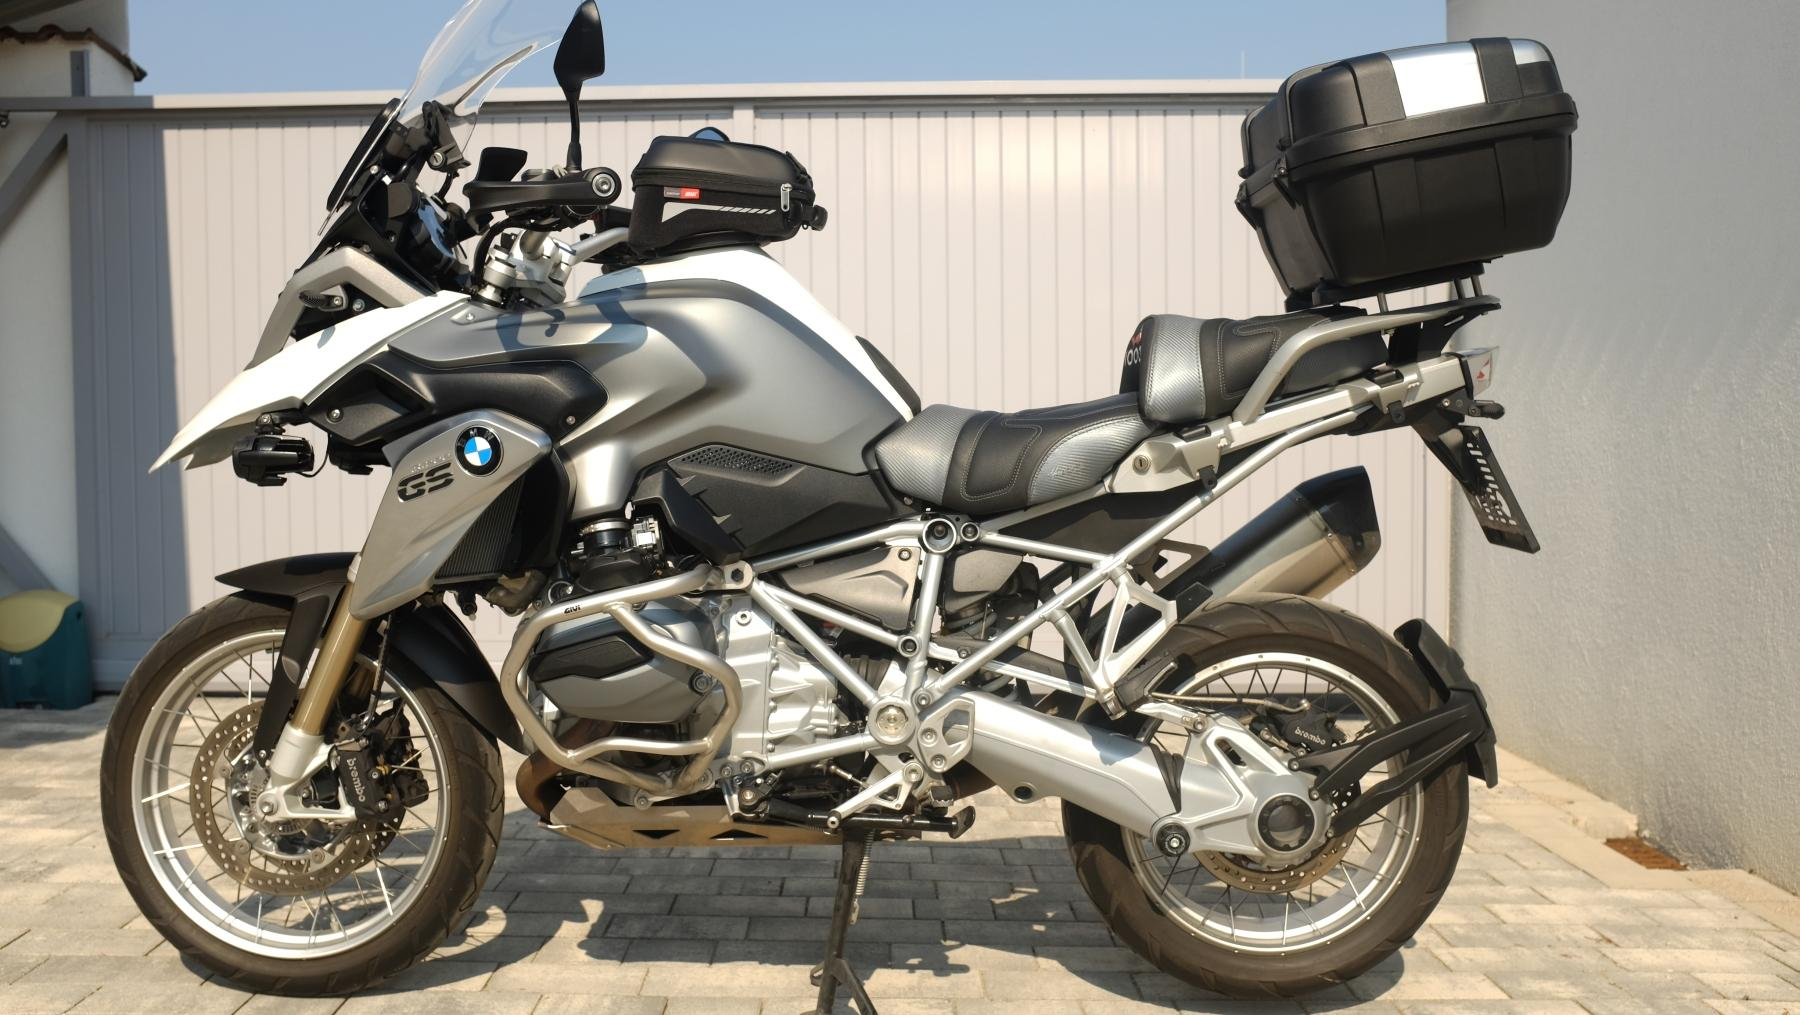 bmw r 1200 gs dauertest zubeh r wunderlich und givi. Black Bedroom Furniture Sets. Home Design Ideas